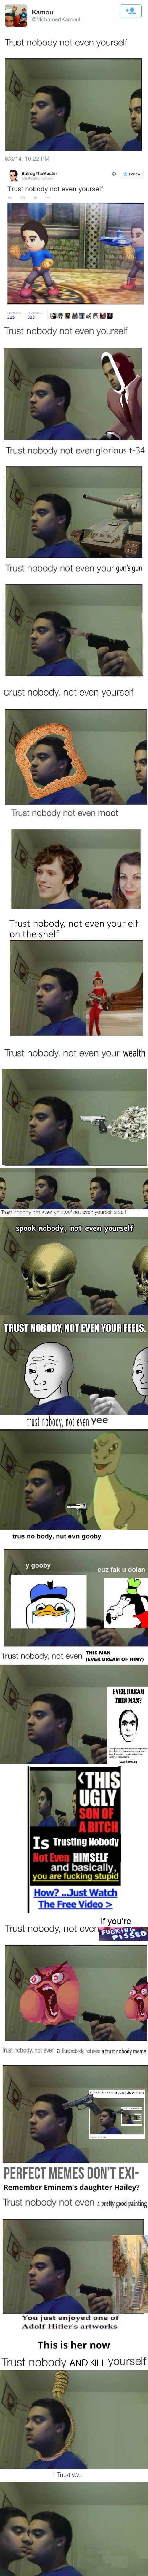 Trust Nobody Not Even Yourself Credits To Bakoahmed And Watermelonhero By Rayyzo Meme Center See more 'trust nobody, not even yourself' images on know your meme! trust nobody not even yourself